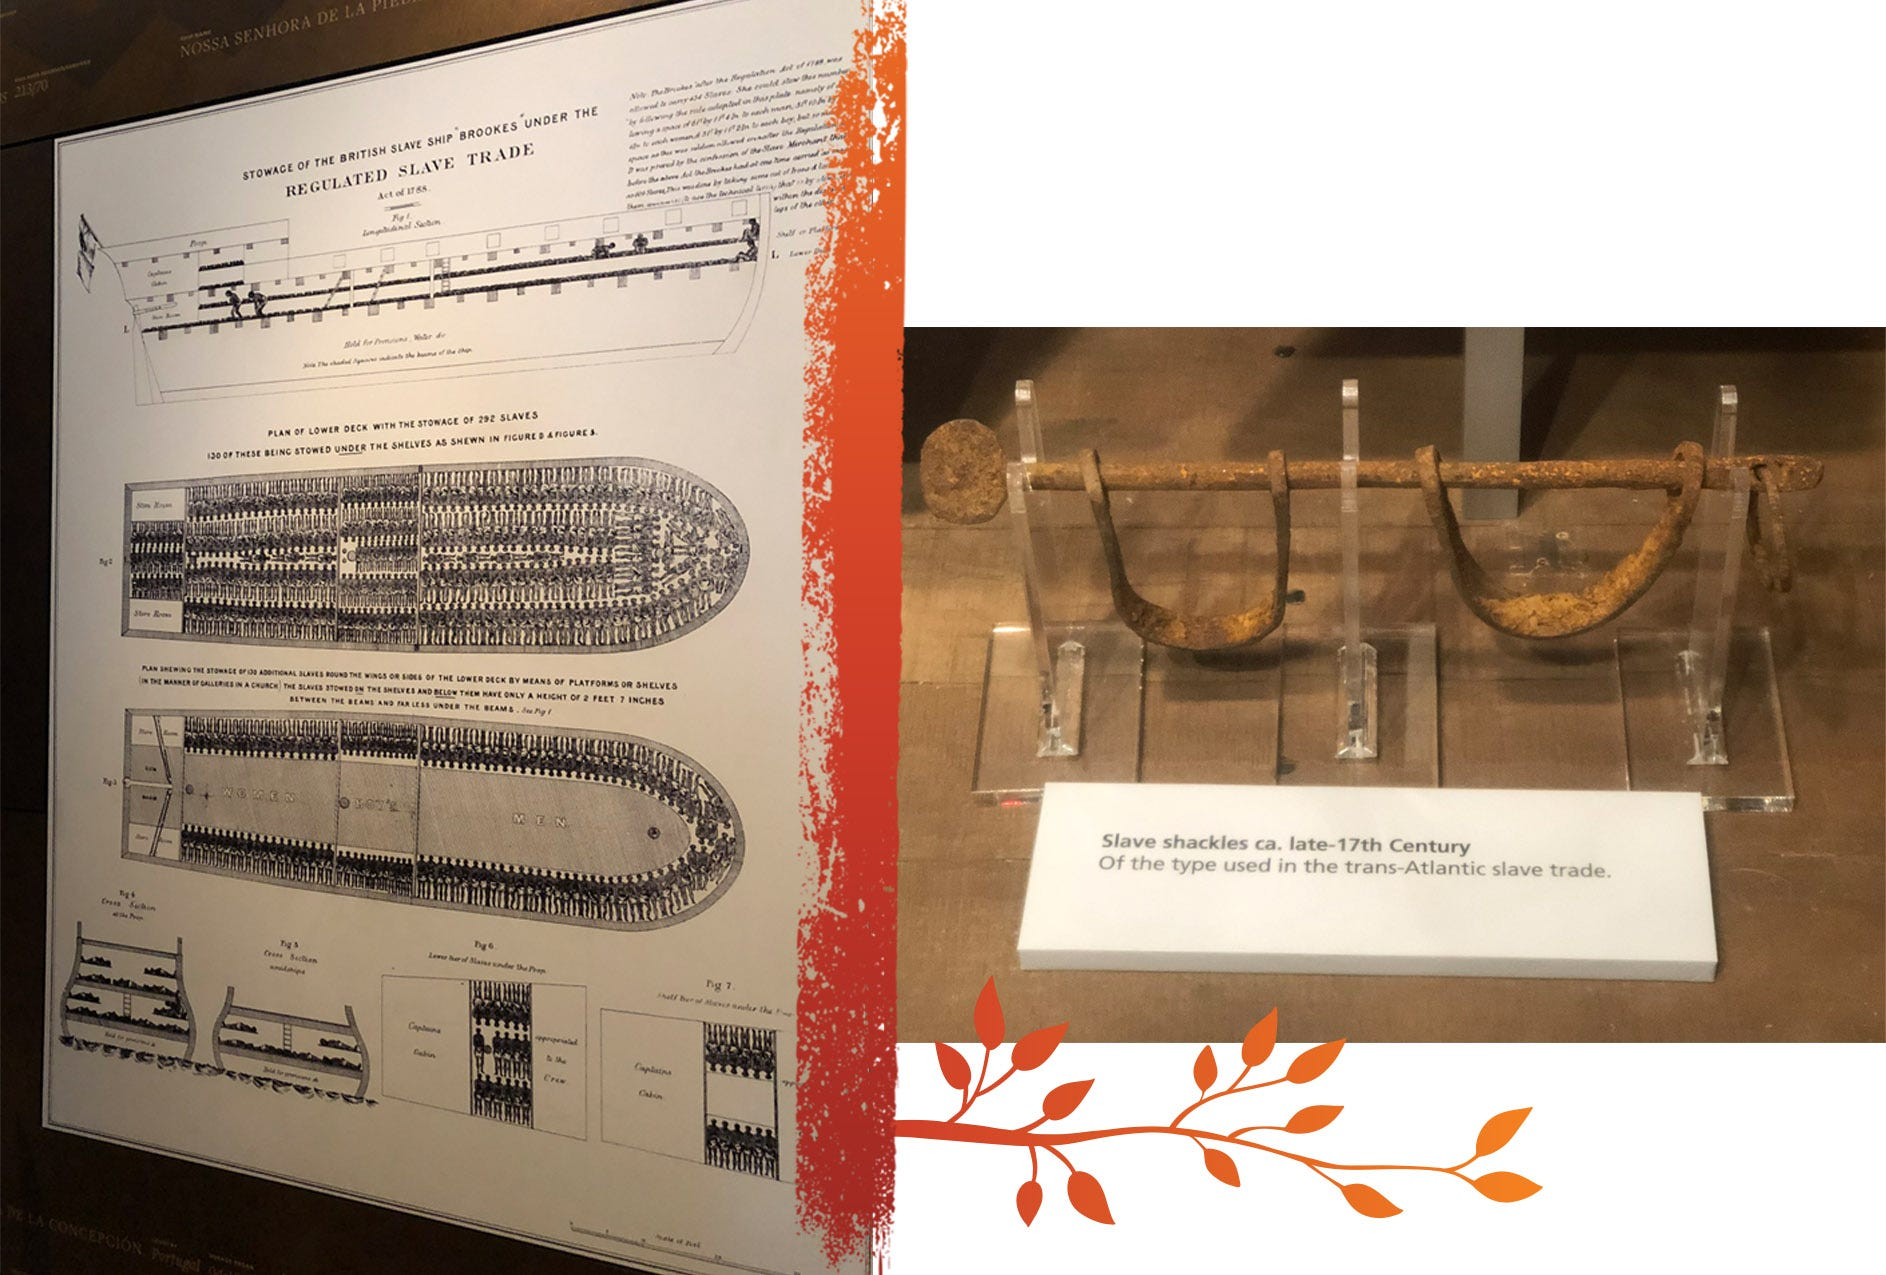 Left, a historic illustration of the Brookes slave ship, on display at the Smithsonian National Museum of African American History and Culture. The image shows the human cargo packed in accordance with government regulations outlined in the Regulated Slave Trade Act of 1788. Right, slave shackles from the late 17th century on display at the Hampton History Museum in Hampton, Virginia.